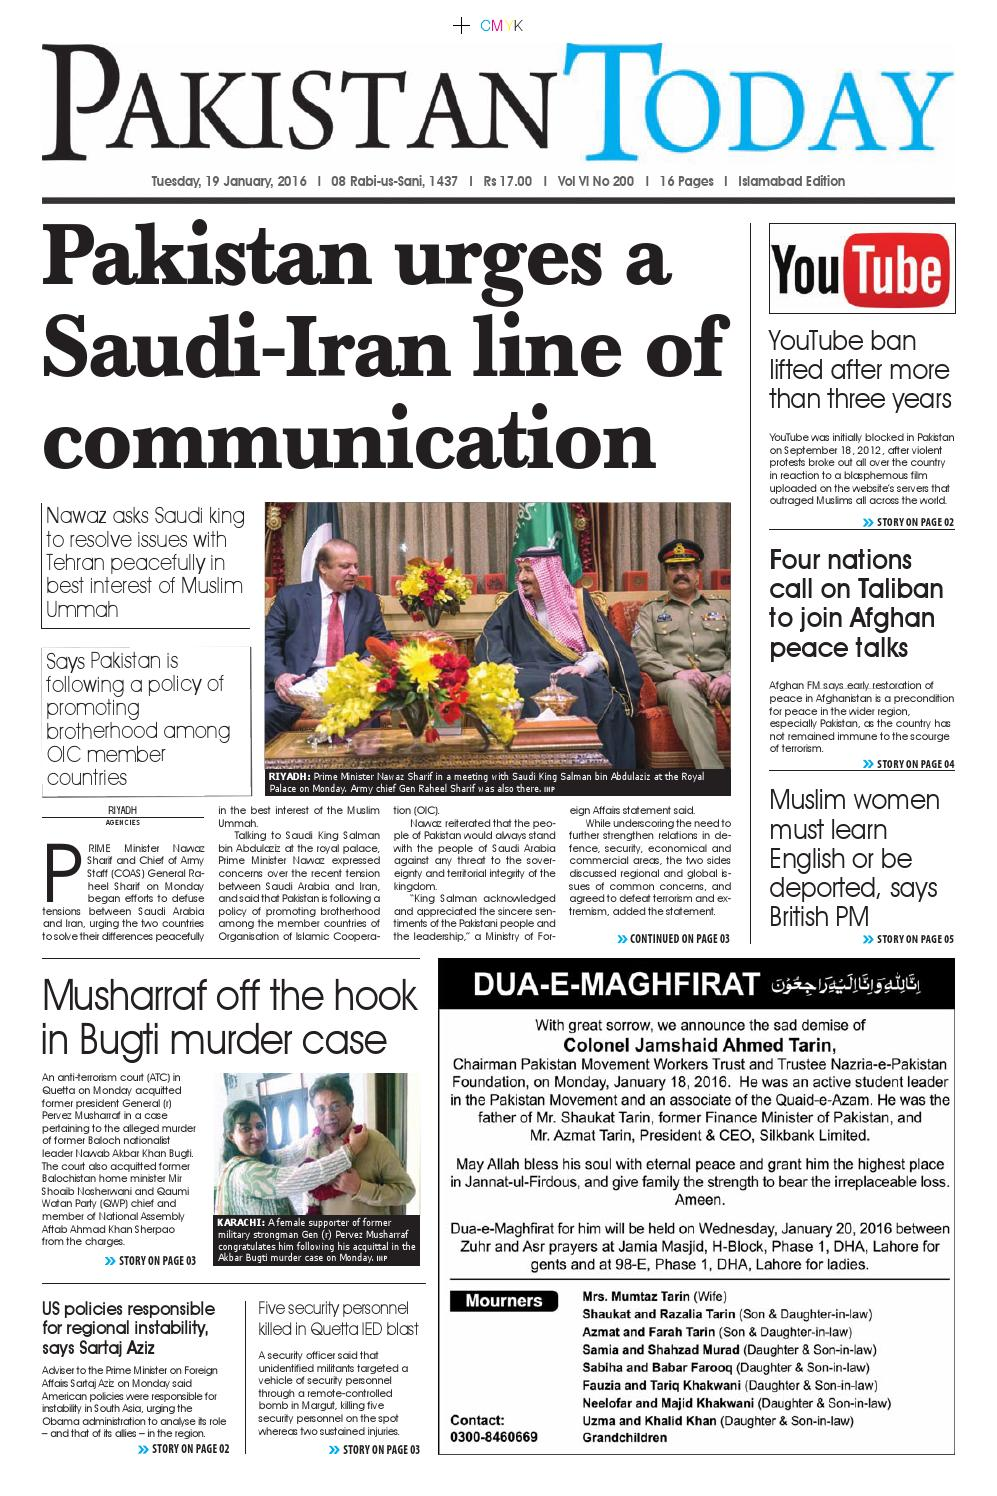 E paper pdf (19 1 2016) isb by Pakistan Today - issuu